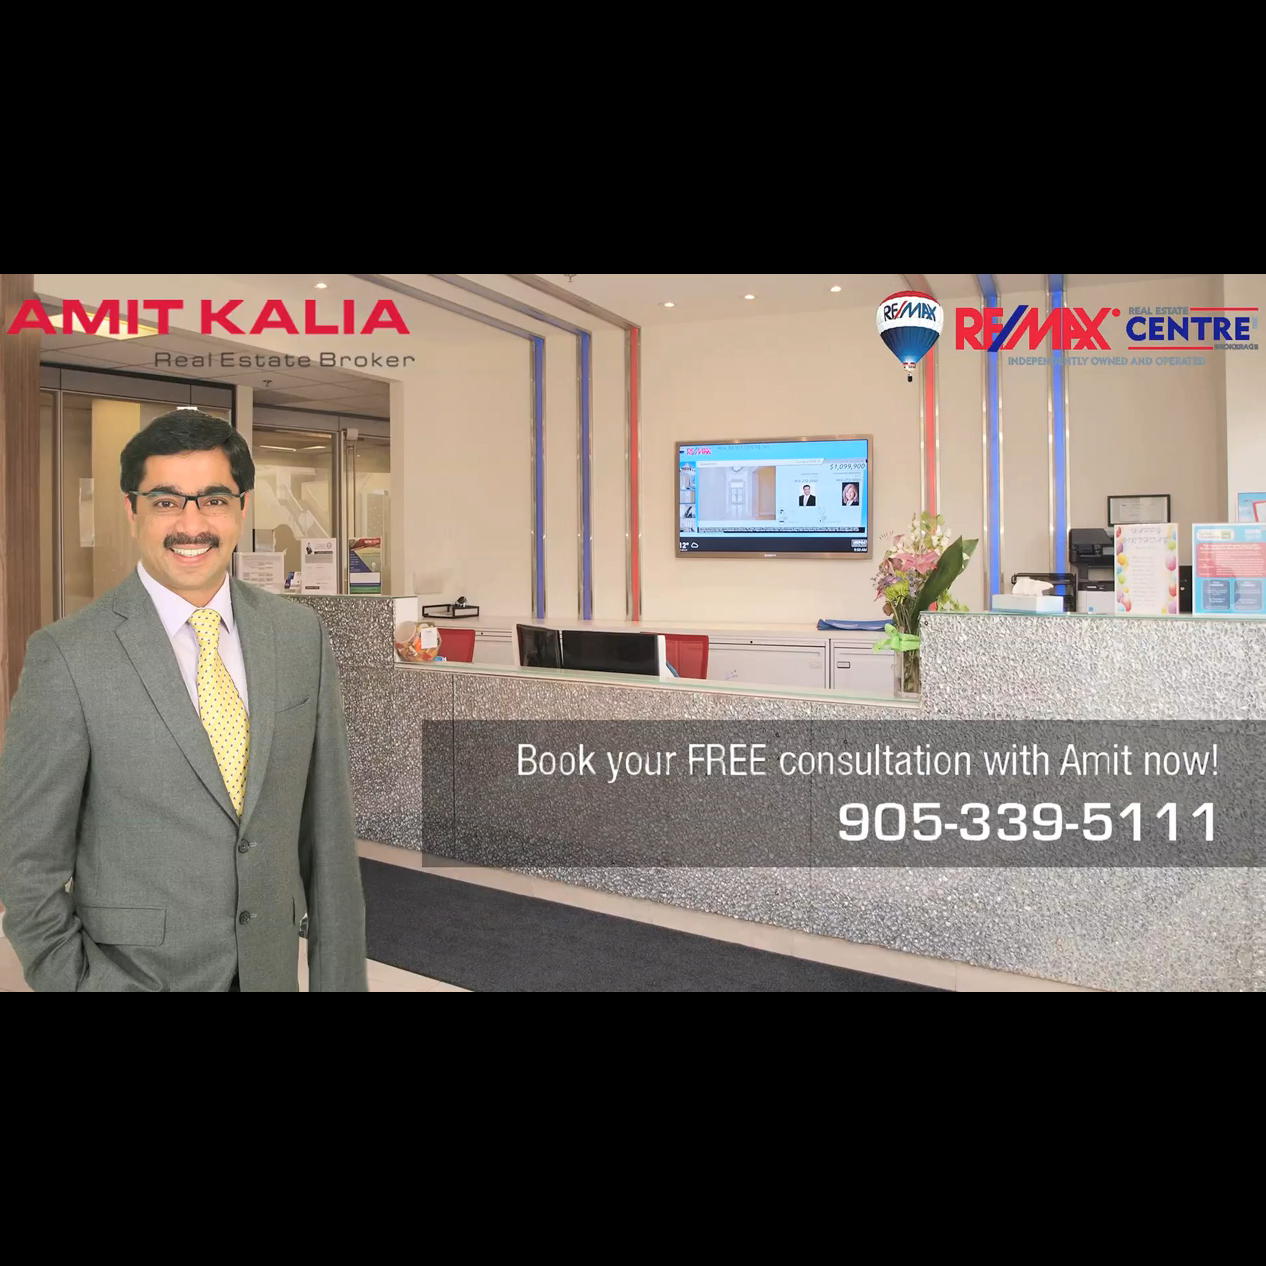 Amit Kalia Broker-RE/MAX Real Estate Centre Inc - Real Estate Agents & Brokers - 905-339-5111